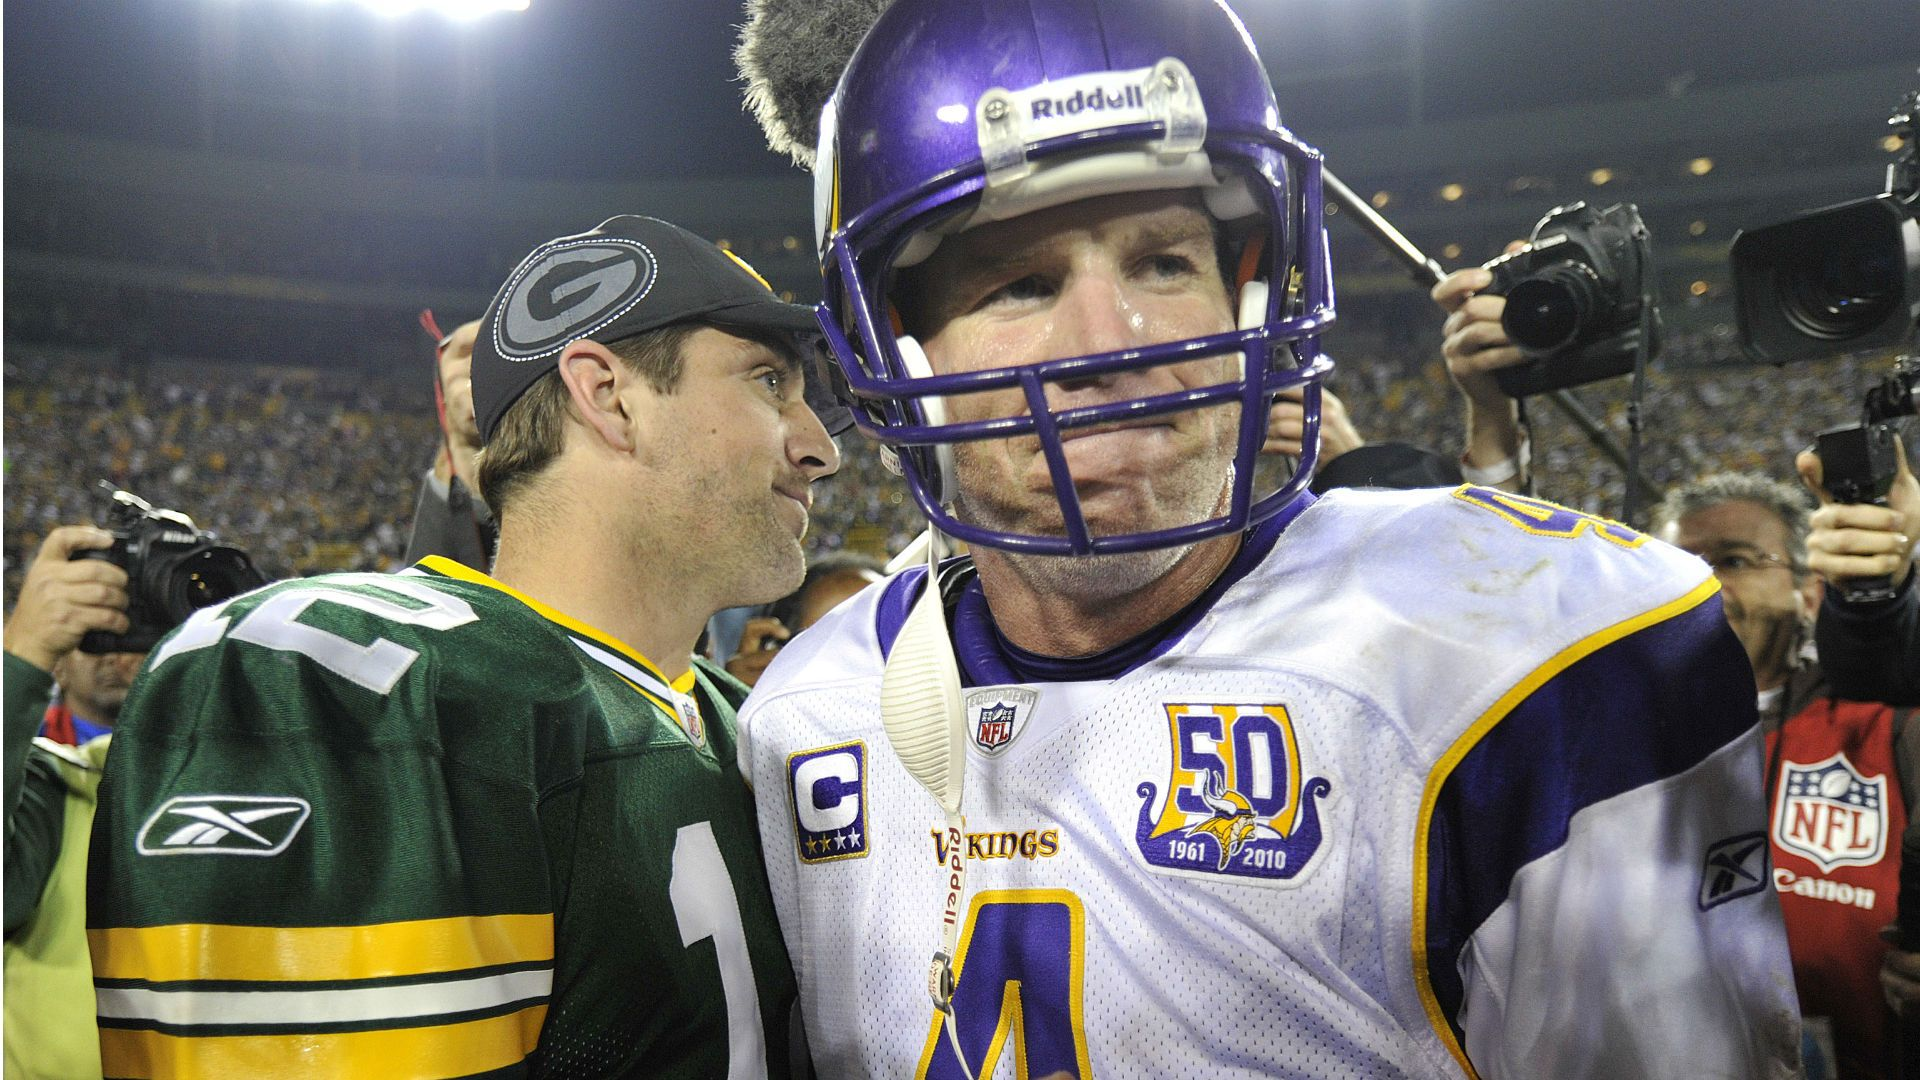 Brett Favre Thinks Aaron Rodgers Wont Finish Career With Packers After Jordan Love Pick The Packers In 2020 Football Fantasy Football Green Bay Packers Aaron Rodgers